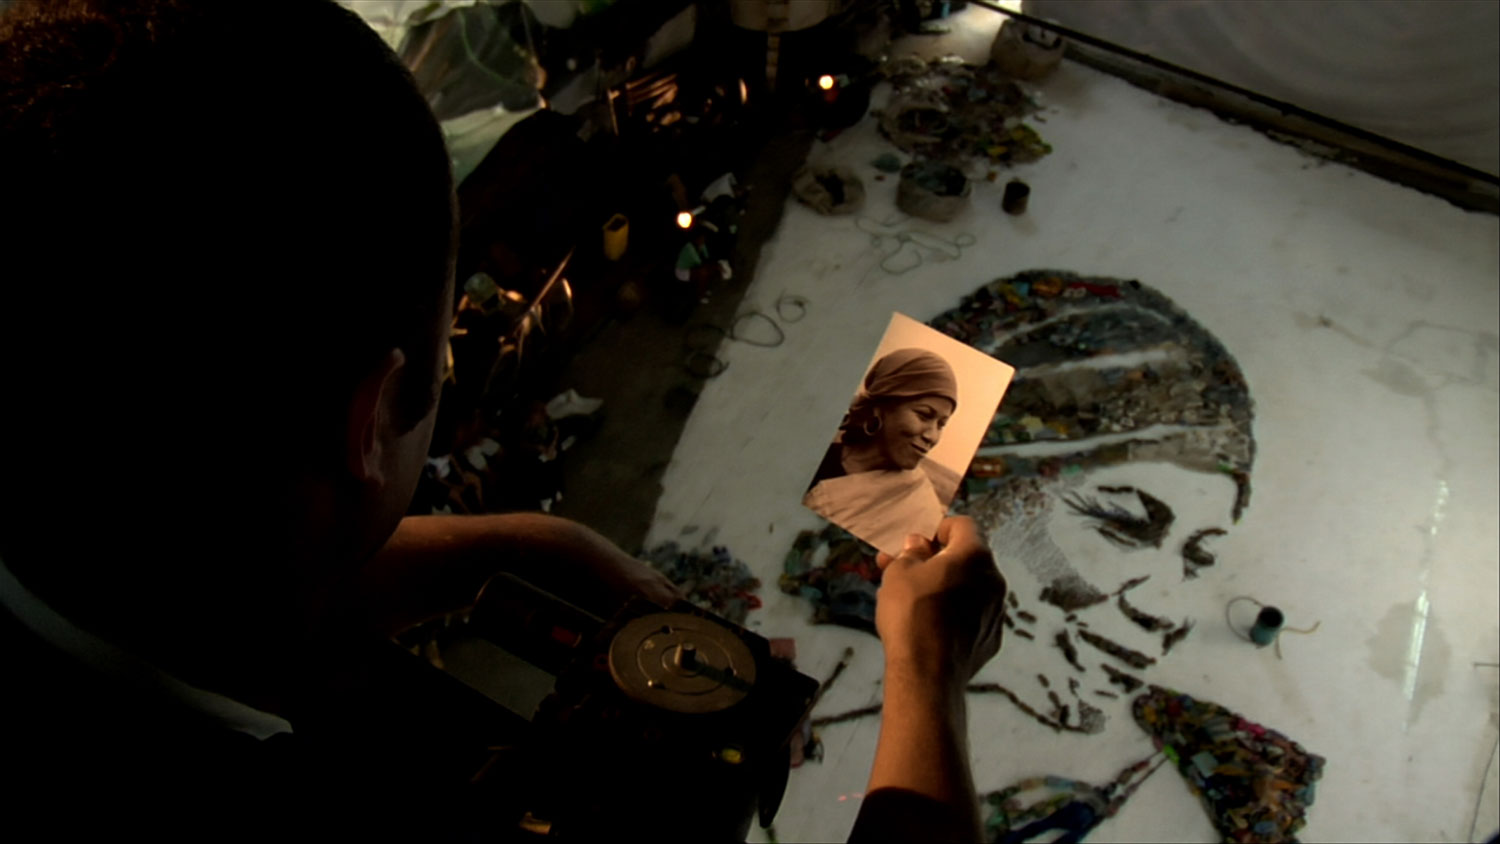 A scene from the film in which Muniz looks at Magna's photo while her final portrait is created in the studio